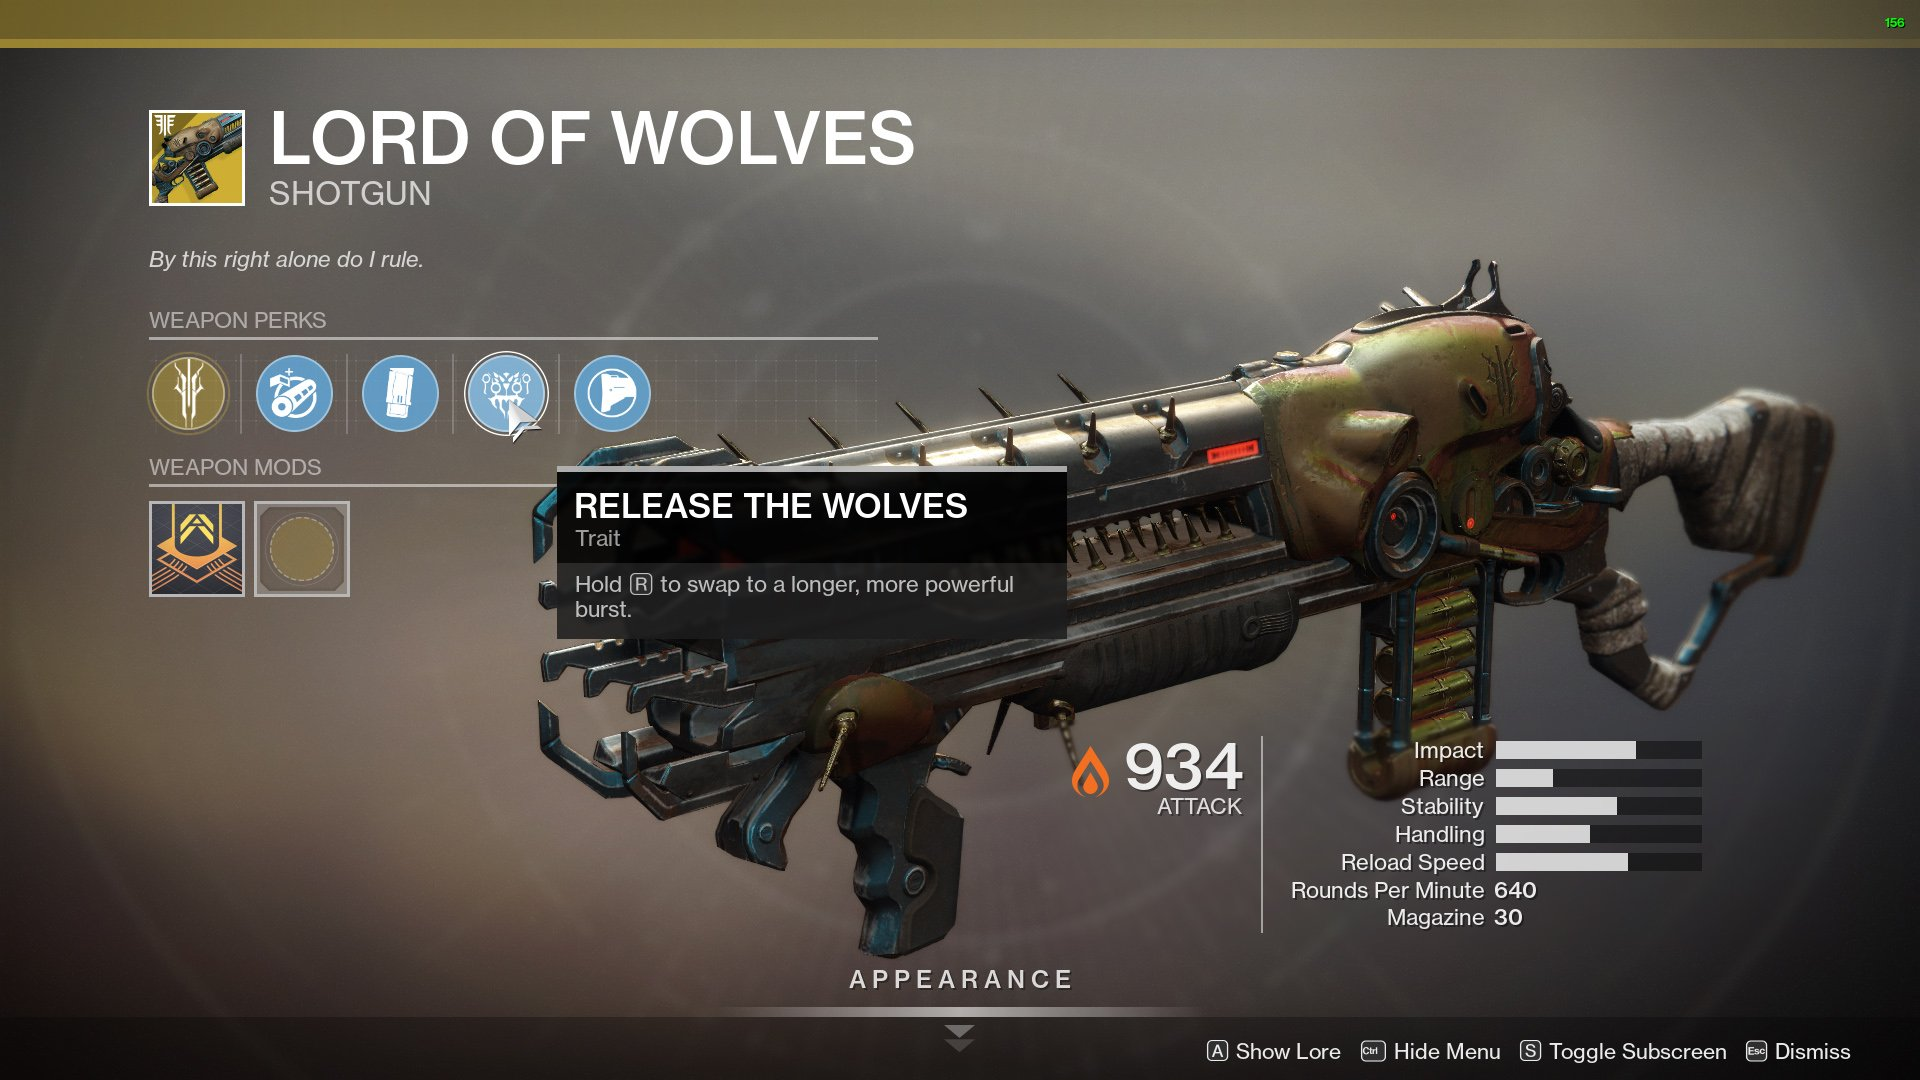 Destiny 2 Lord of Wolves